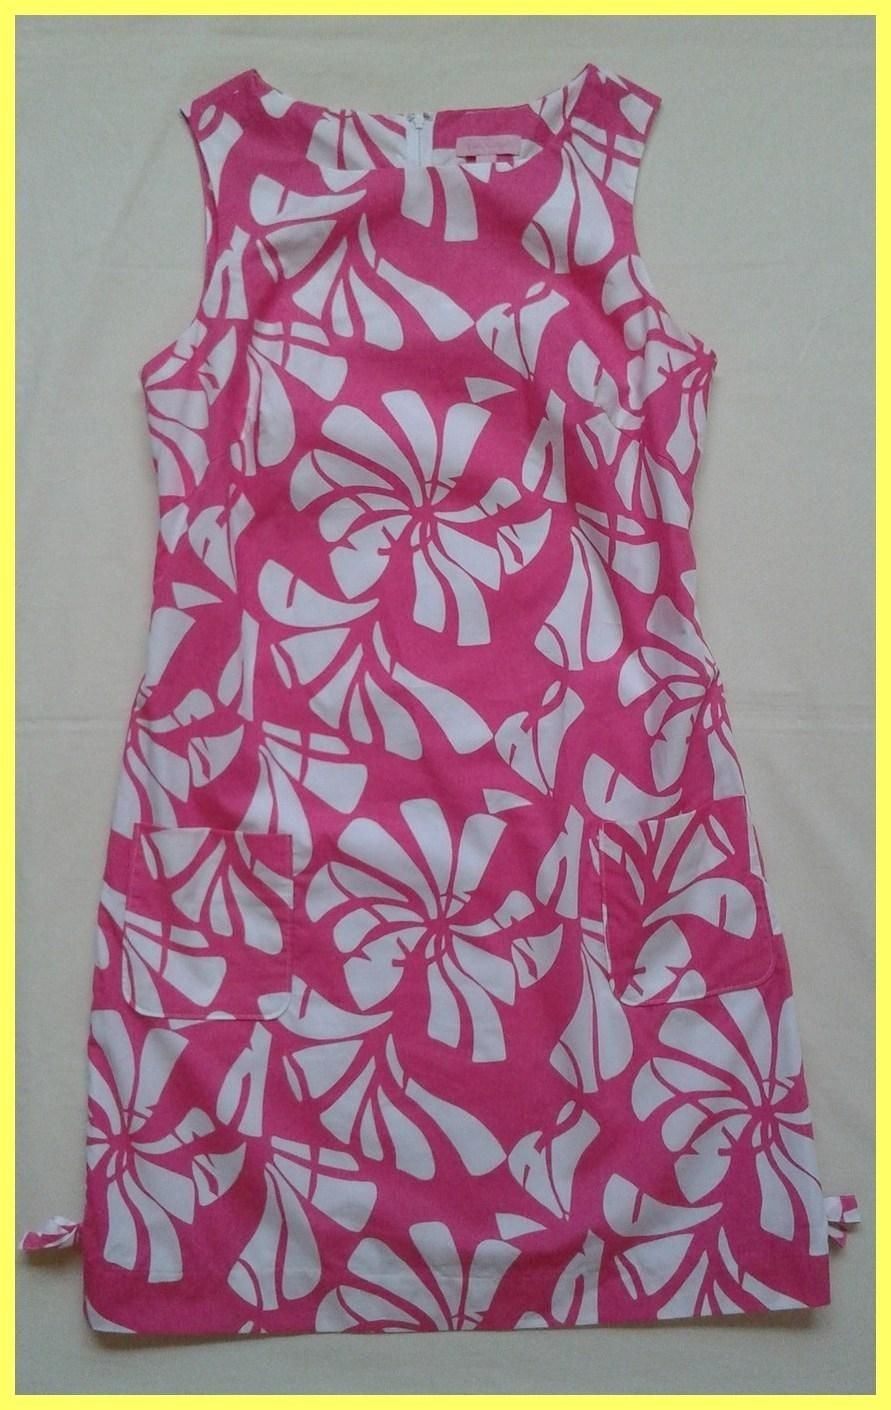 6a302eed005 Free shipping and guaranteed authenticity on Lilly Pulitzer Pink / White  Floral Print Cotton Worth Shift Dress at Tradesy.